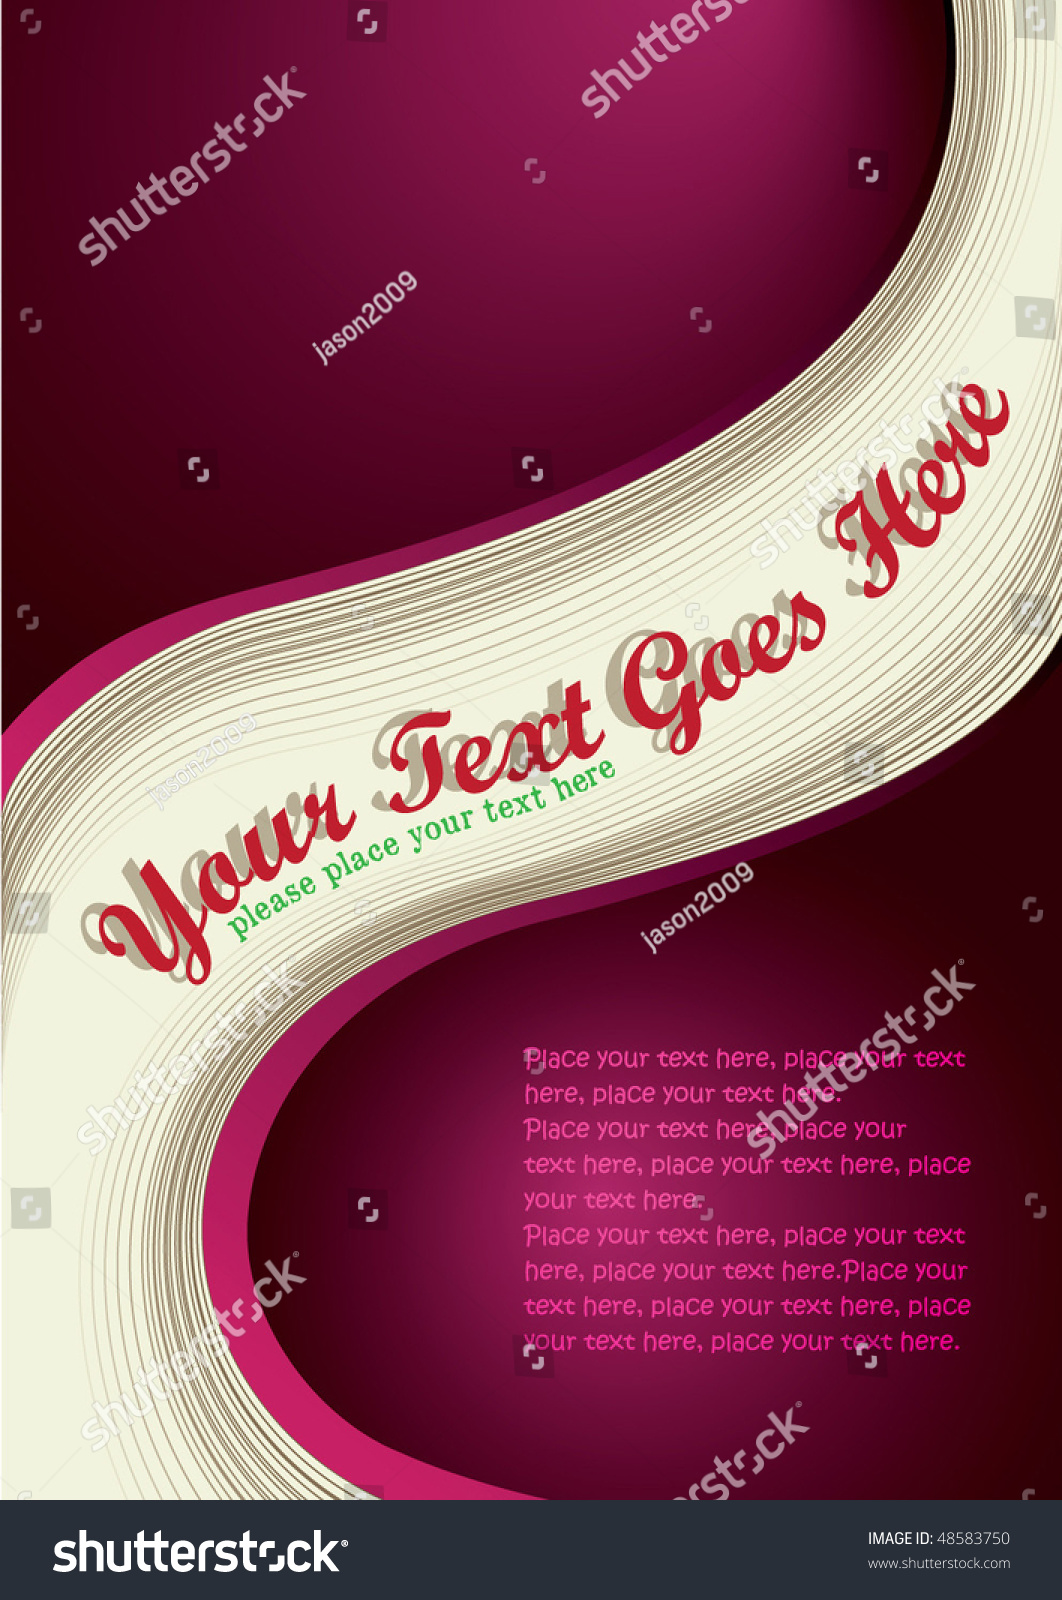 covertemplate sets stock vector shutterstock cover template sets 37